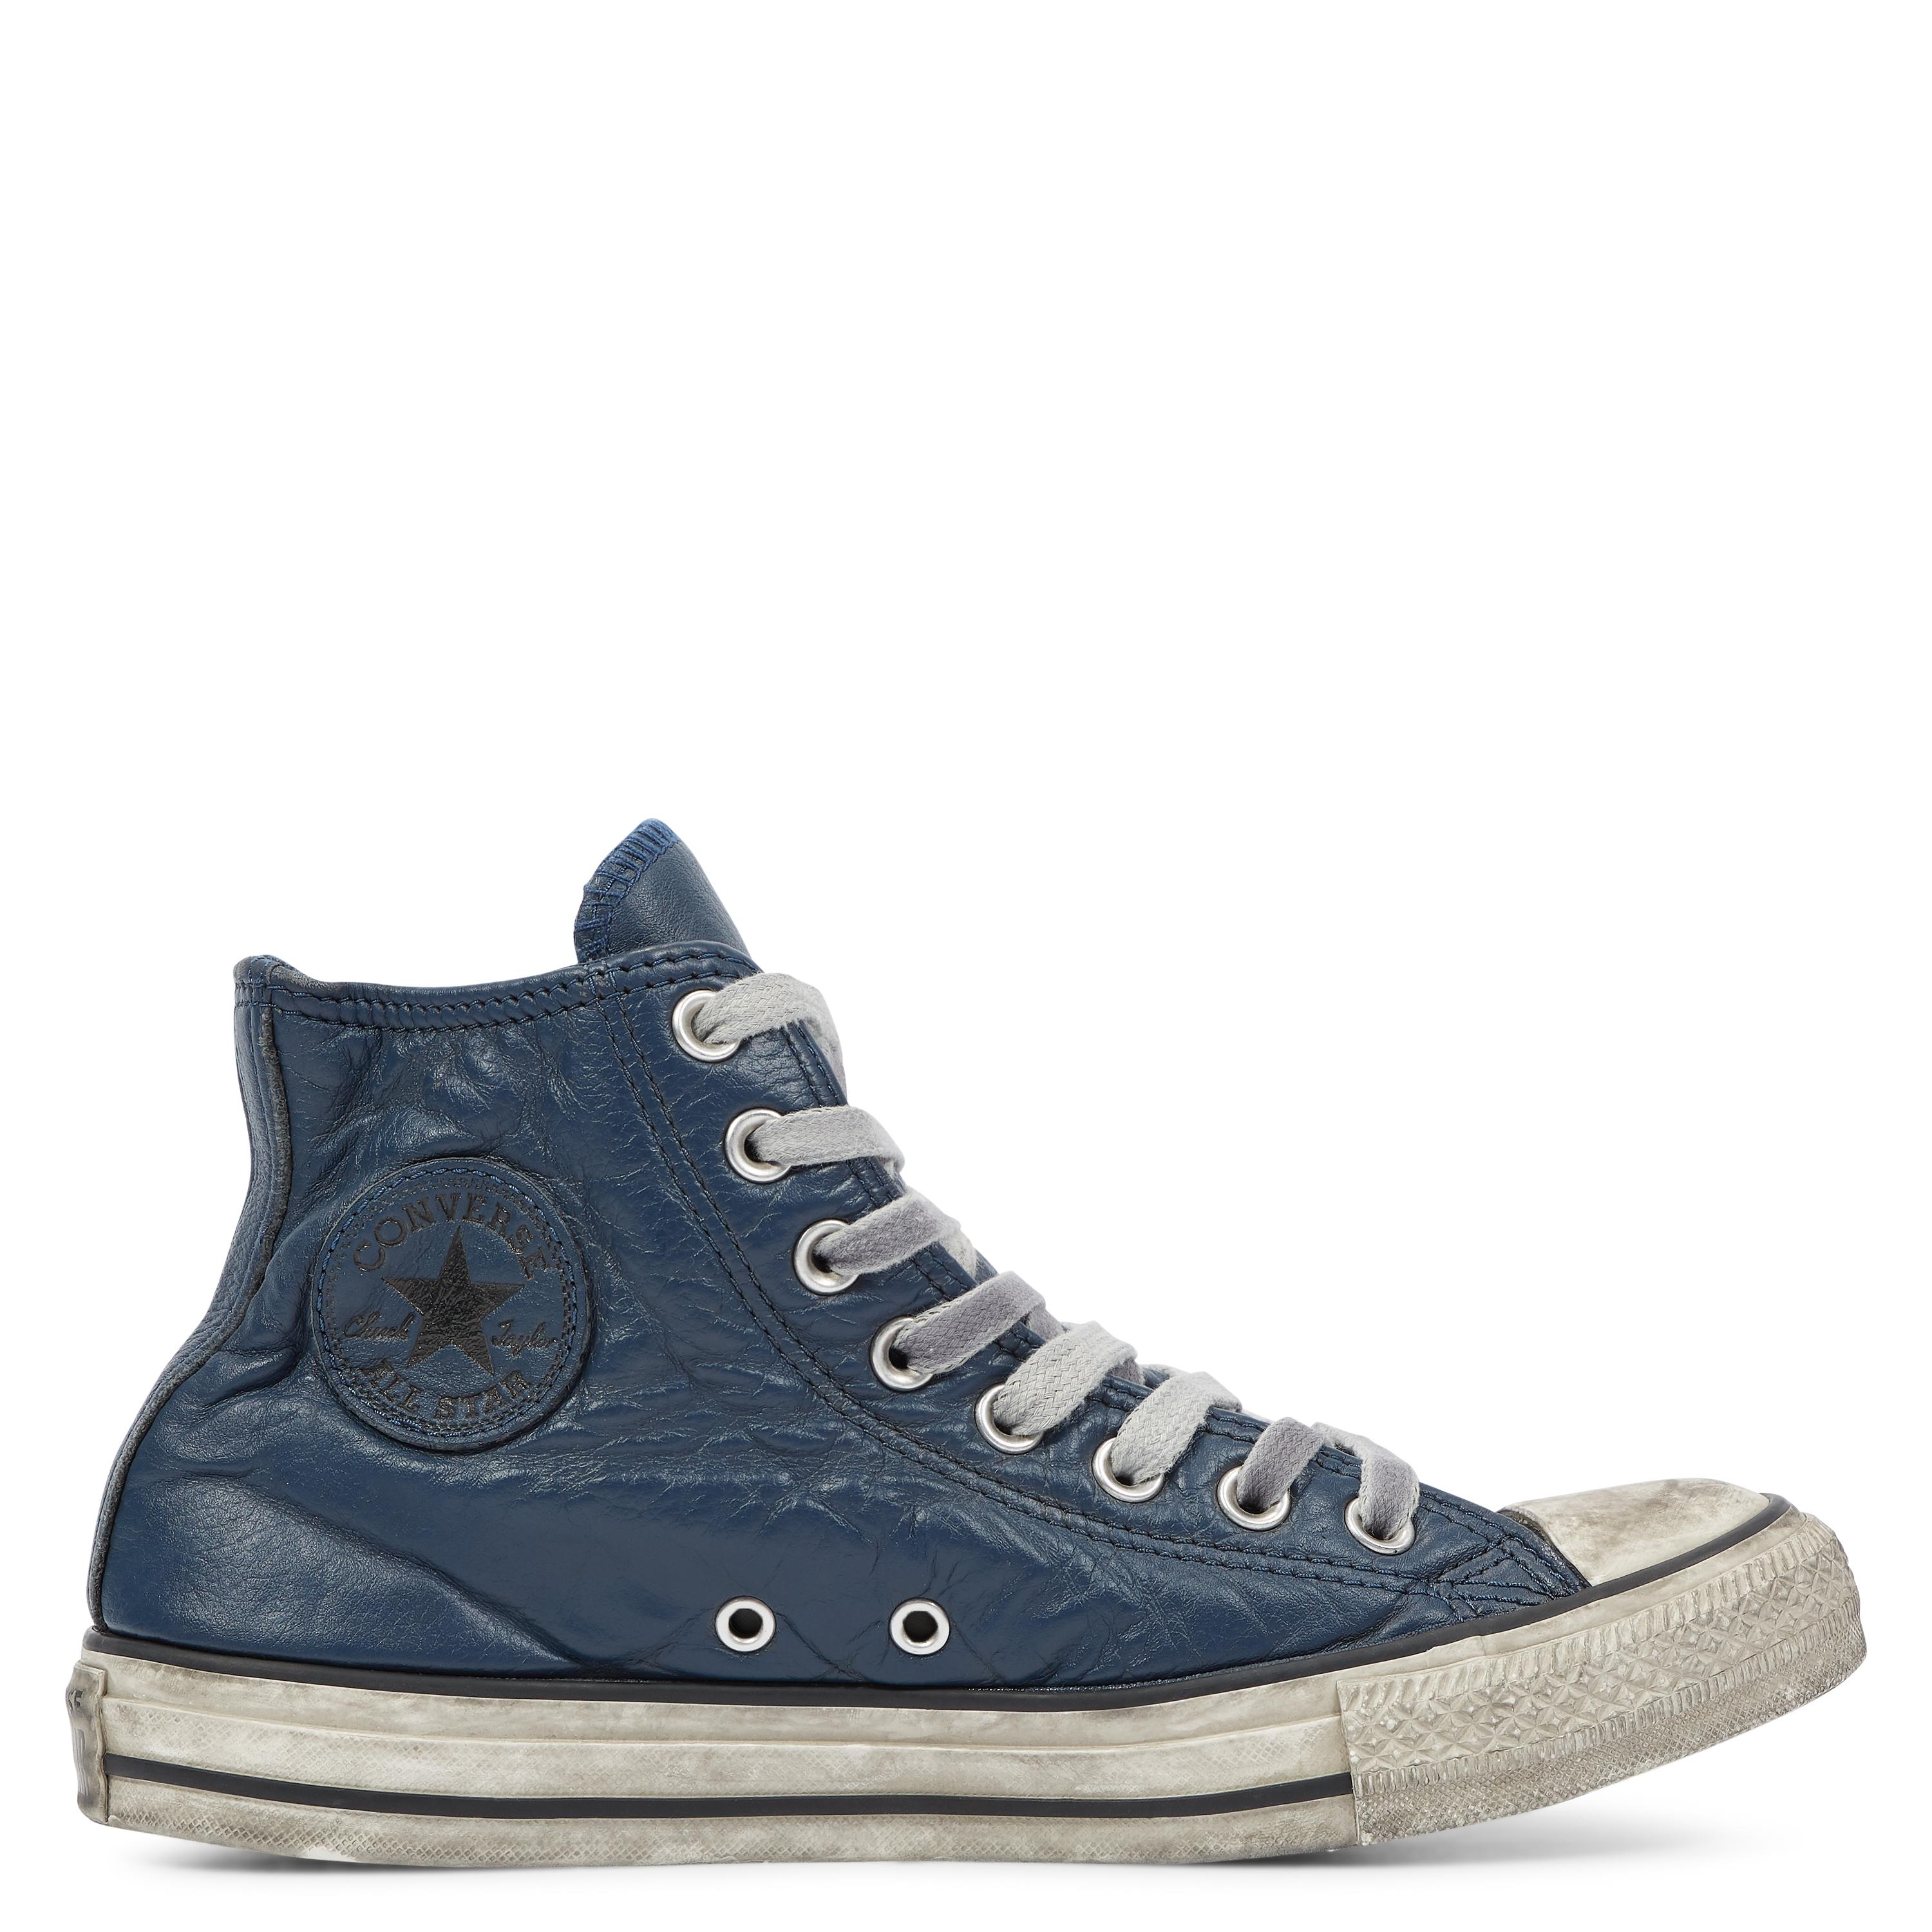 8c4c55daace6c Converse Chuck Taylor All Star Vintage Leather High Top in Blue for ...